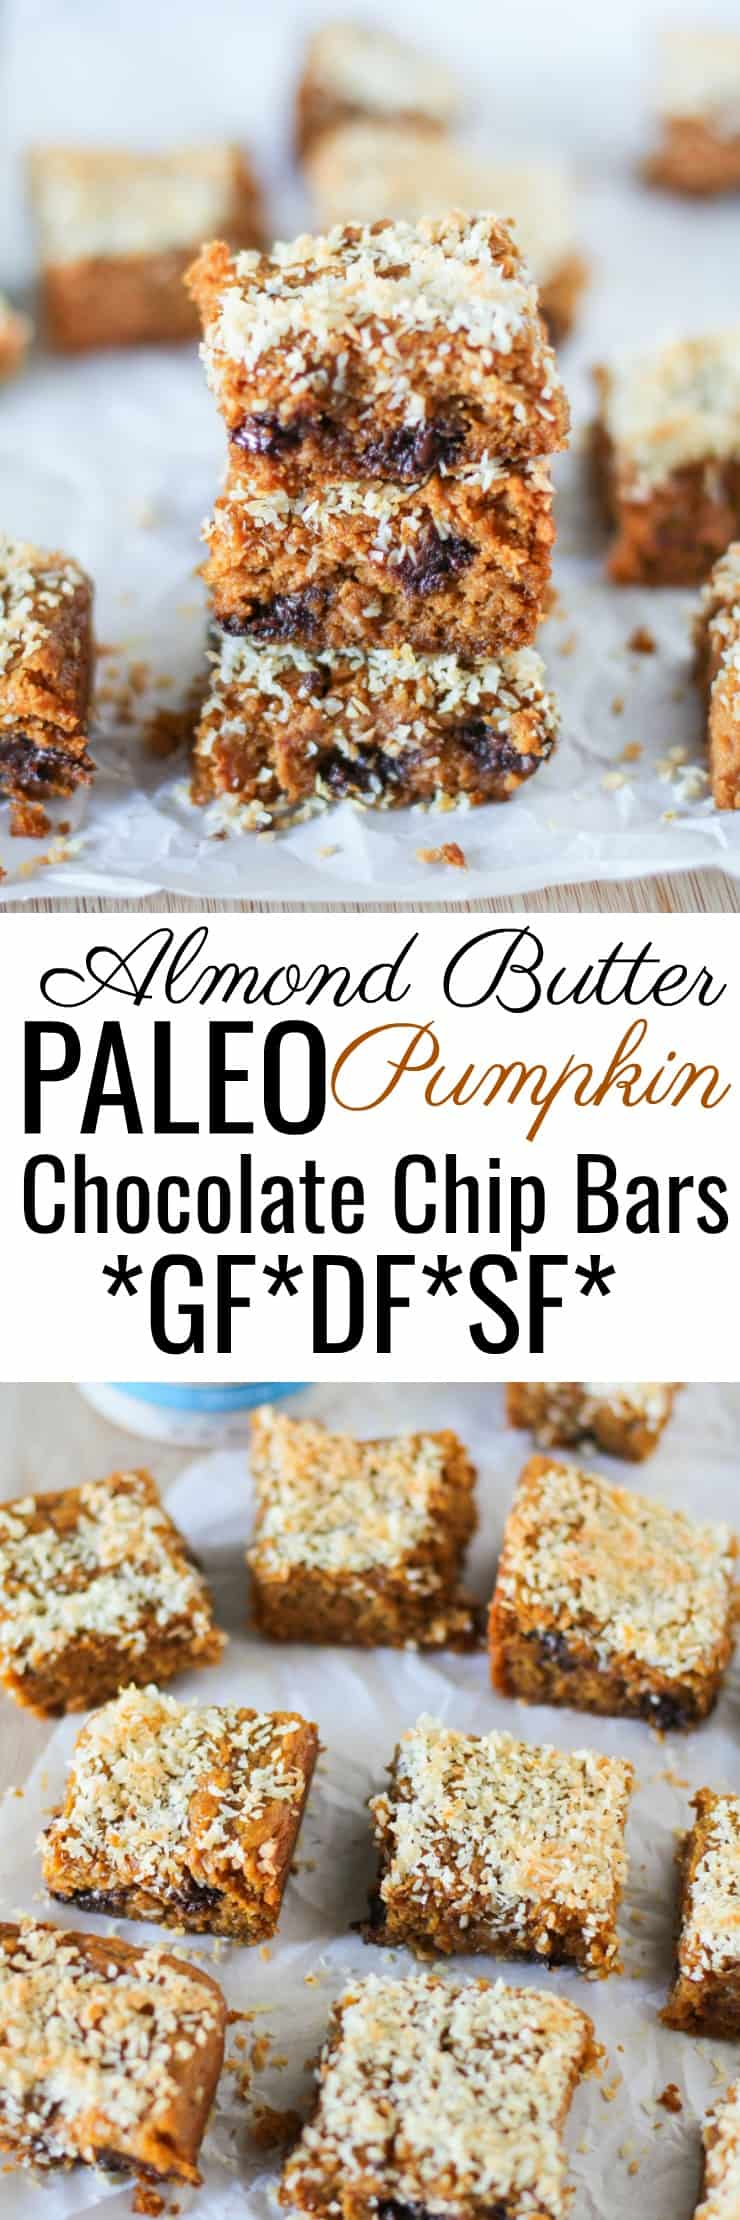 Paleo Pumpkin Bars - grain-free, refined sugar-free, dairy-free and made with almond butter!